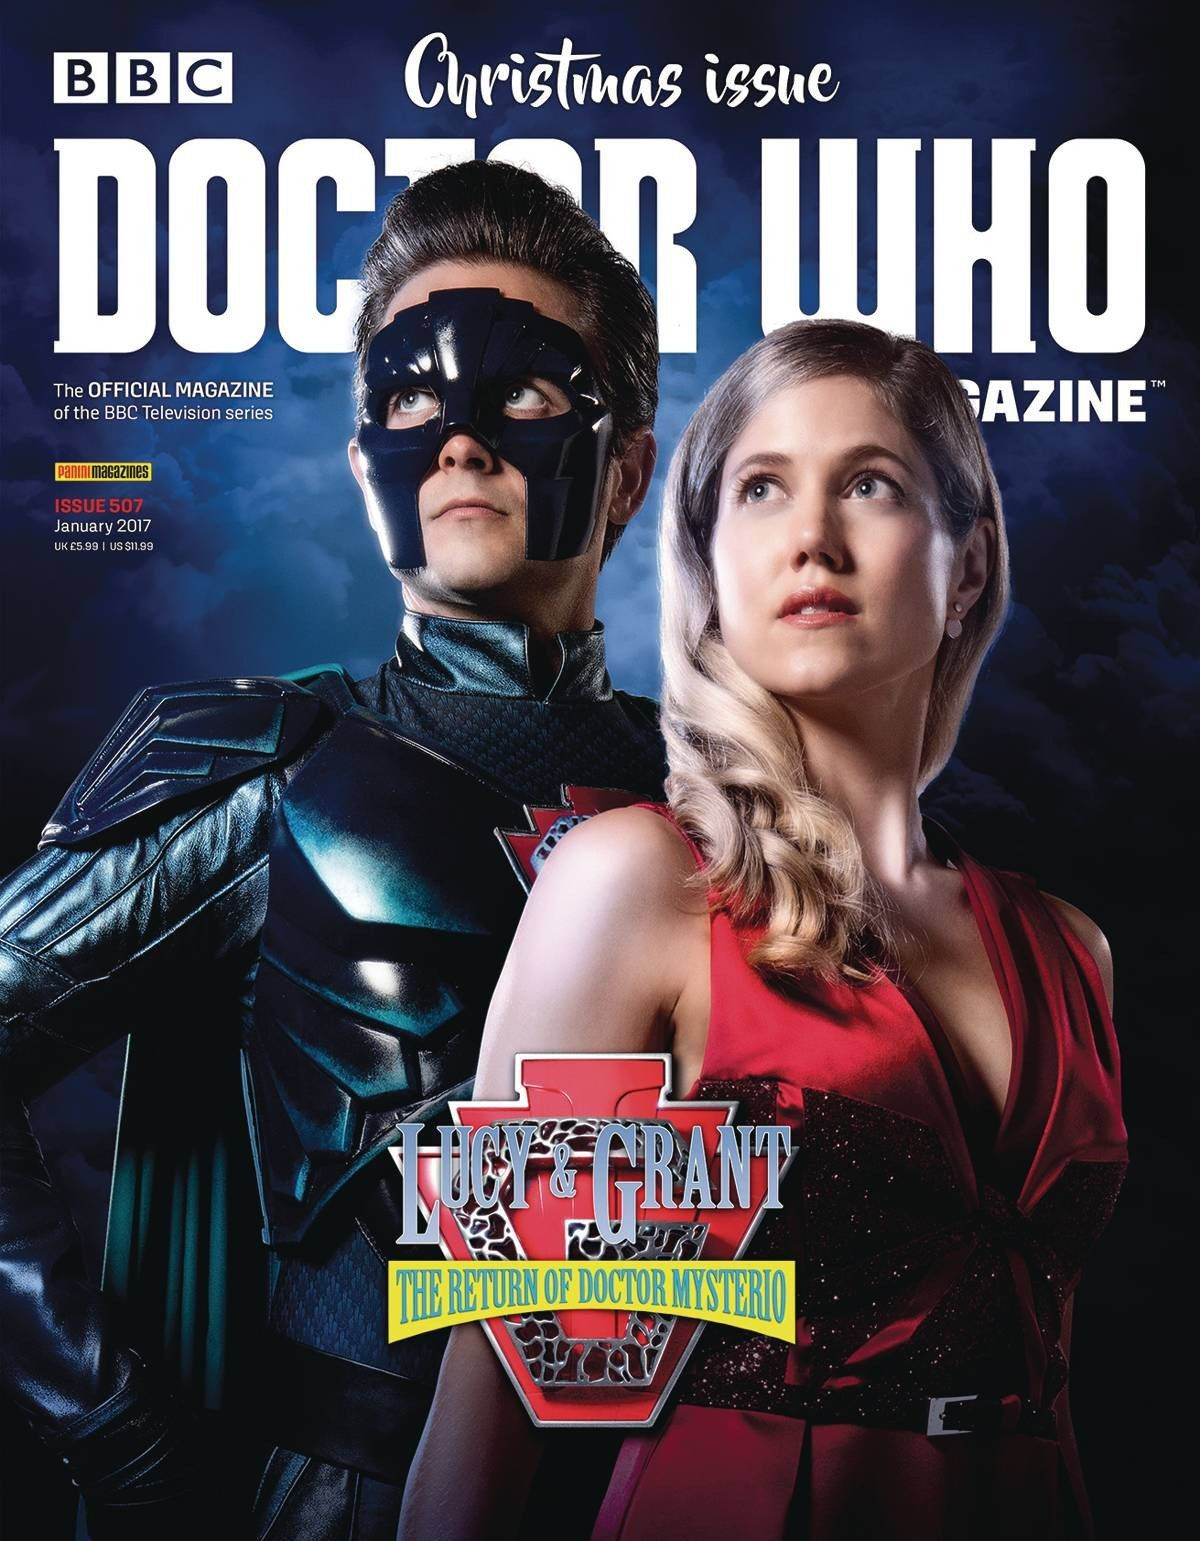 DOCTOR WHO MAGAZINE 512 Doctor who magazine, Doctor who